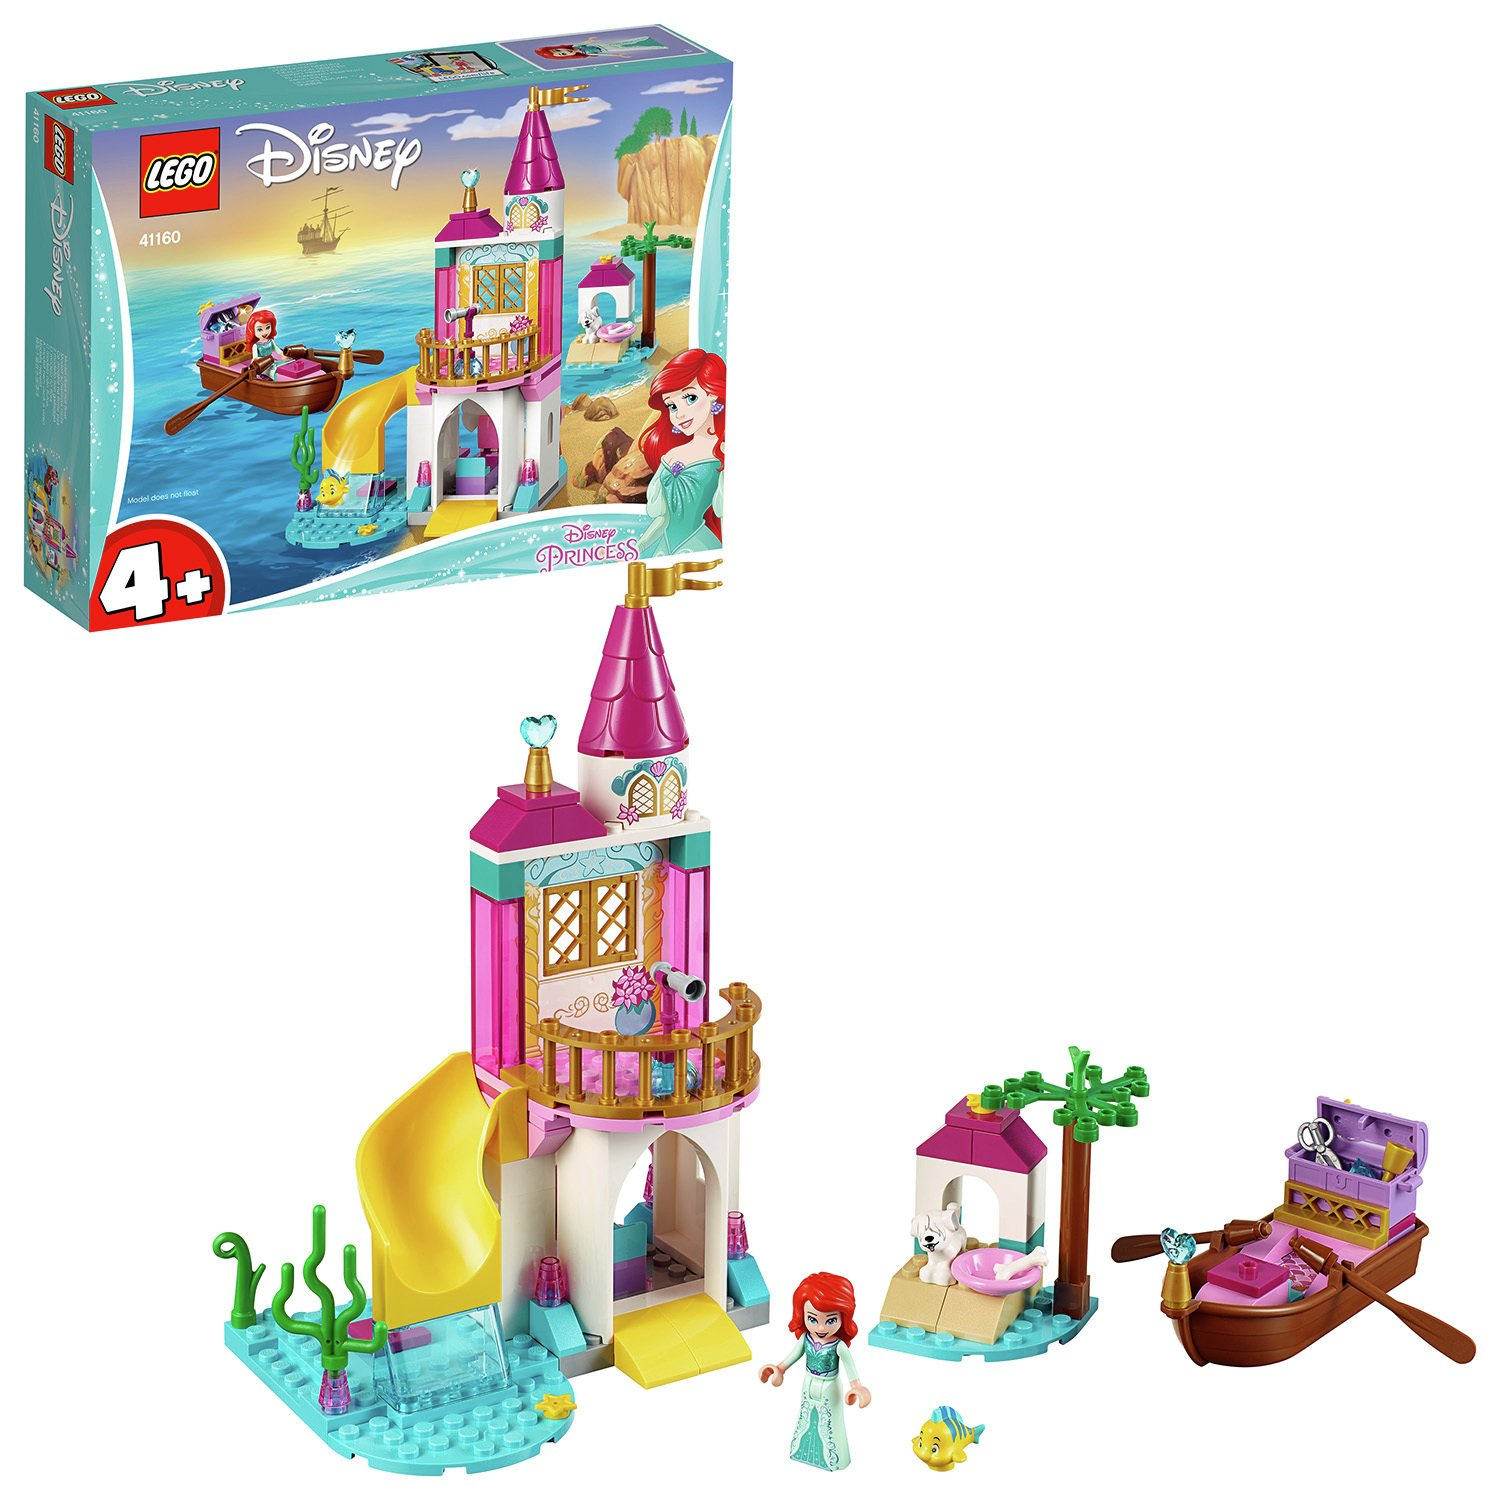 LEGO Disney Princess Ariels Castle - 41160